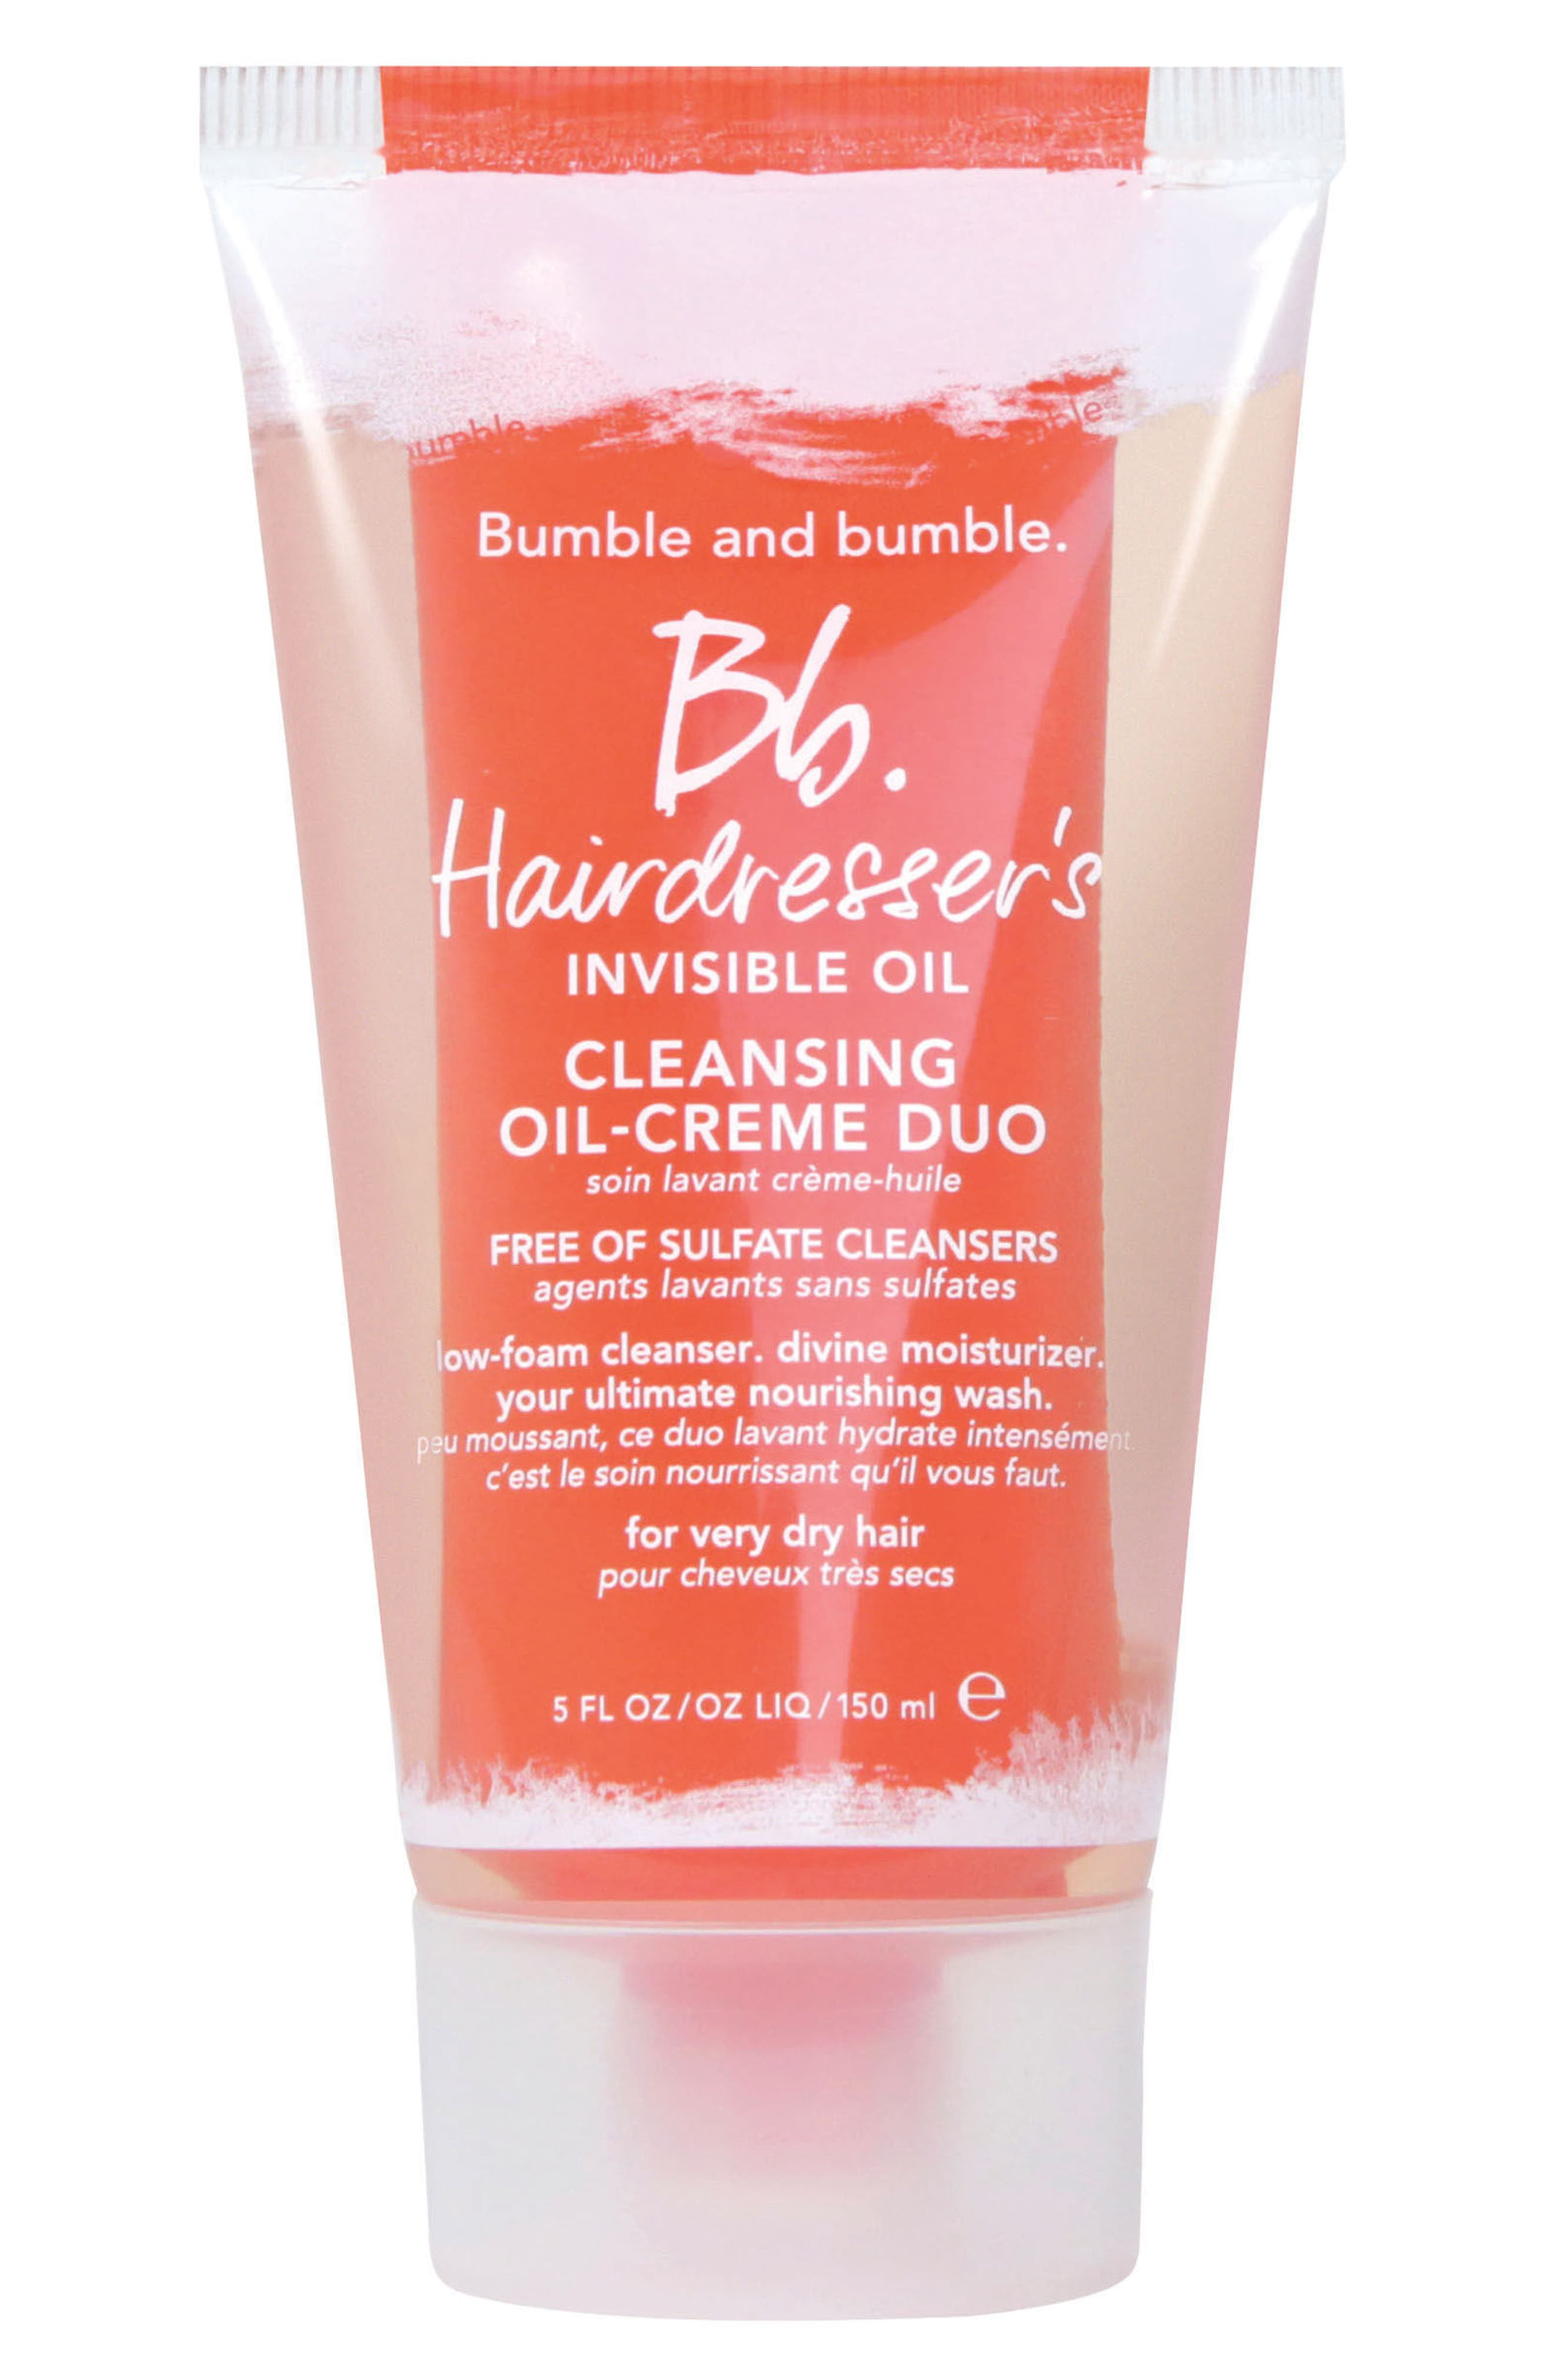 Hairdresser's Invisible Oil Cleansing Oil-Creme Duo,                         Main,                         color, No Color